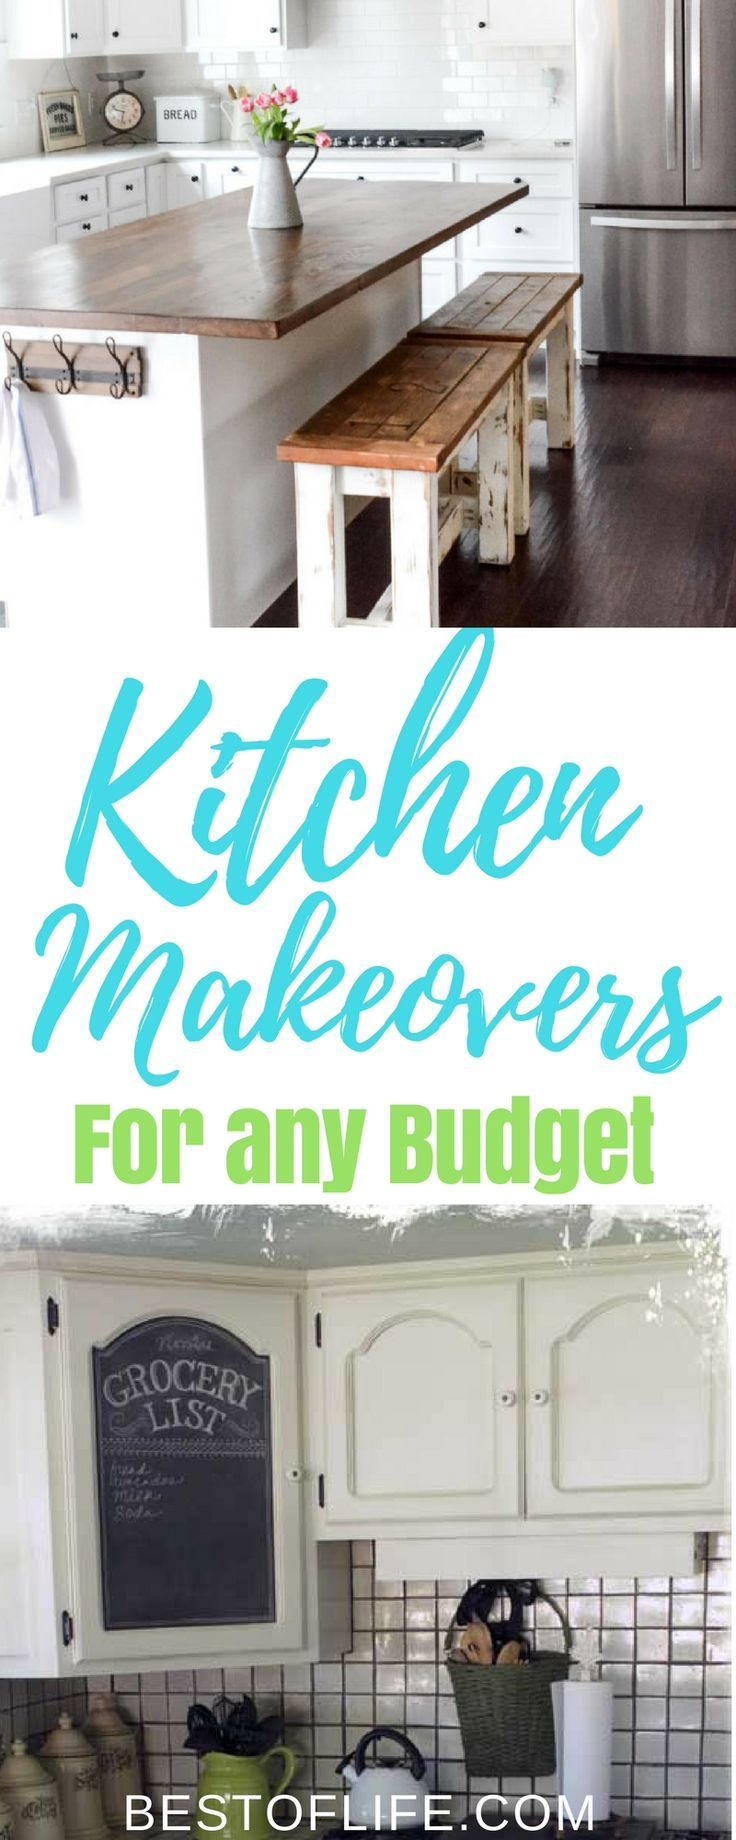 DIY Kitchen Makeover Ideas for any Budget | Diy kitchen ideas ...